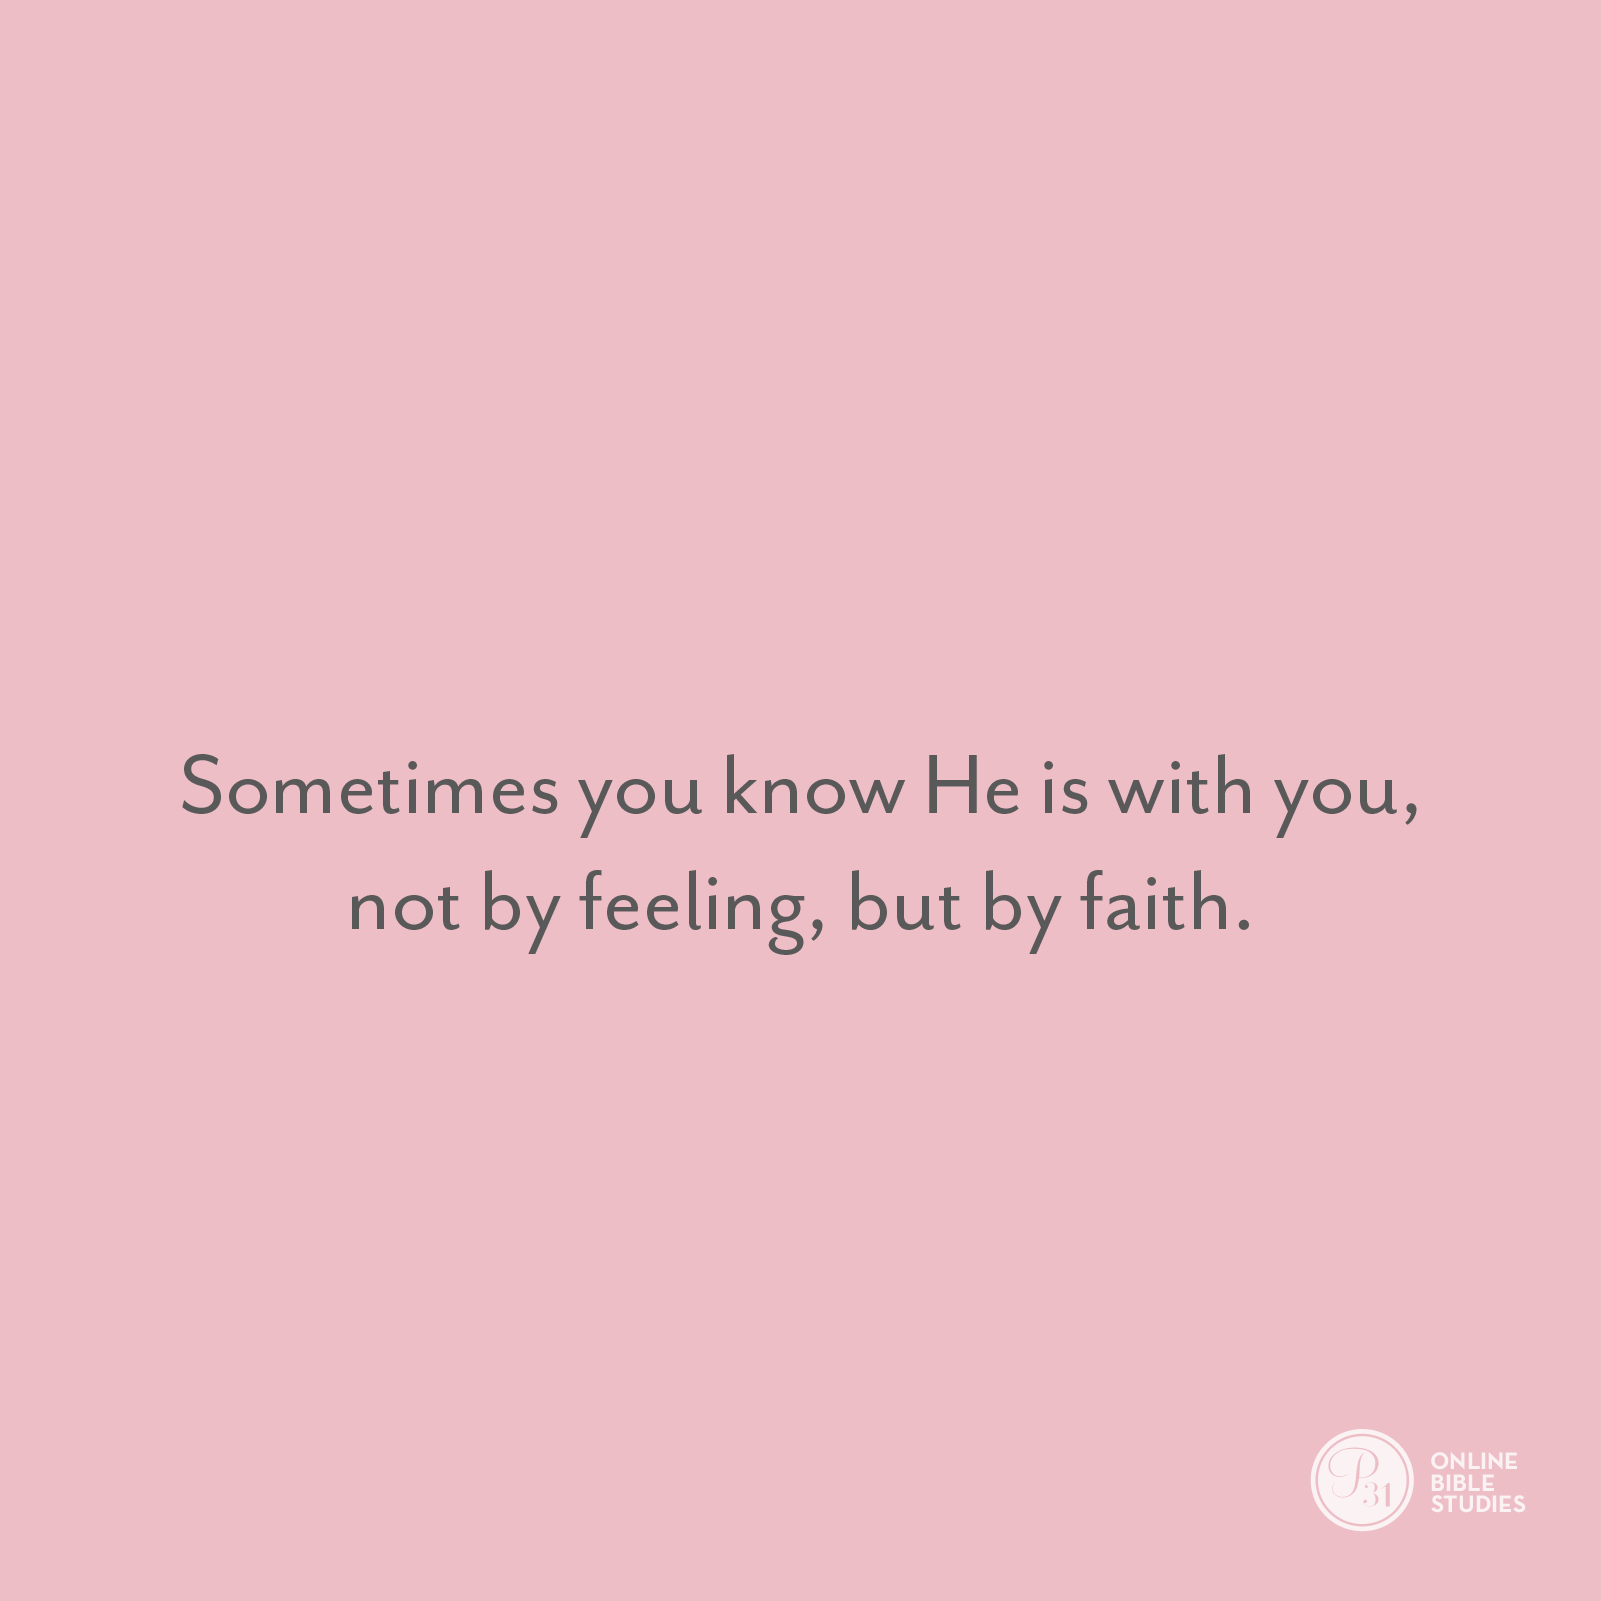 """Sometimes you know he is with you, not by feeling, but by faith."" - Craig Groeschel  #DangerousPrayers 